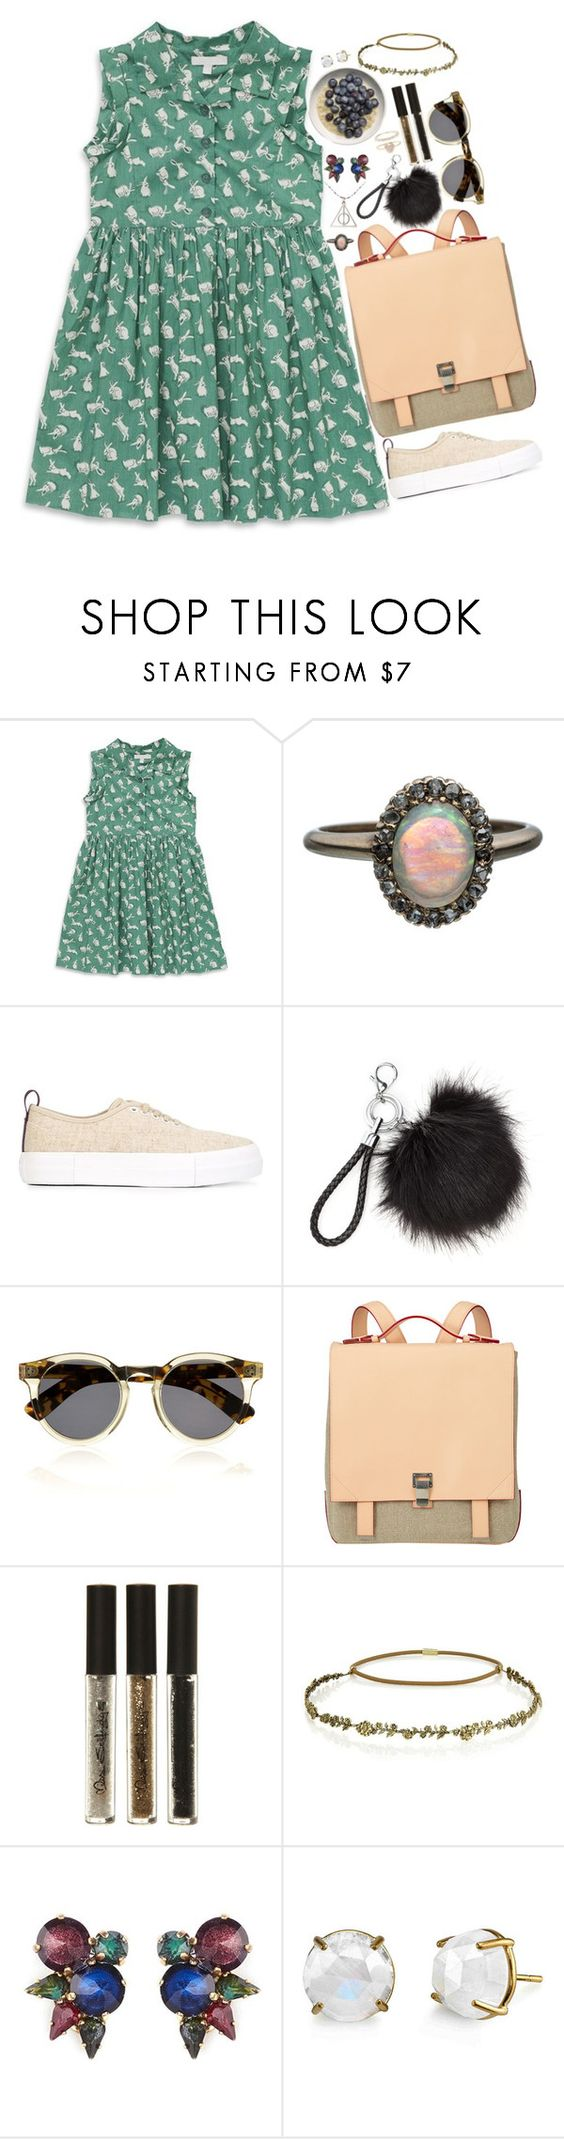 """❤"" by polinachaban ❤ liked on Polyvore featuring Marie Chantal, Alexis Bittar, Eytys, Illesteva, Proenza Schouler, Miss Selfridge, Jennifer Behr, Erickson Beamon, Irene Neuwirth and Accessorize"